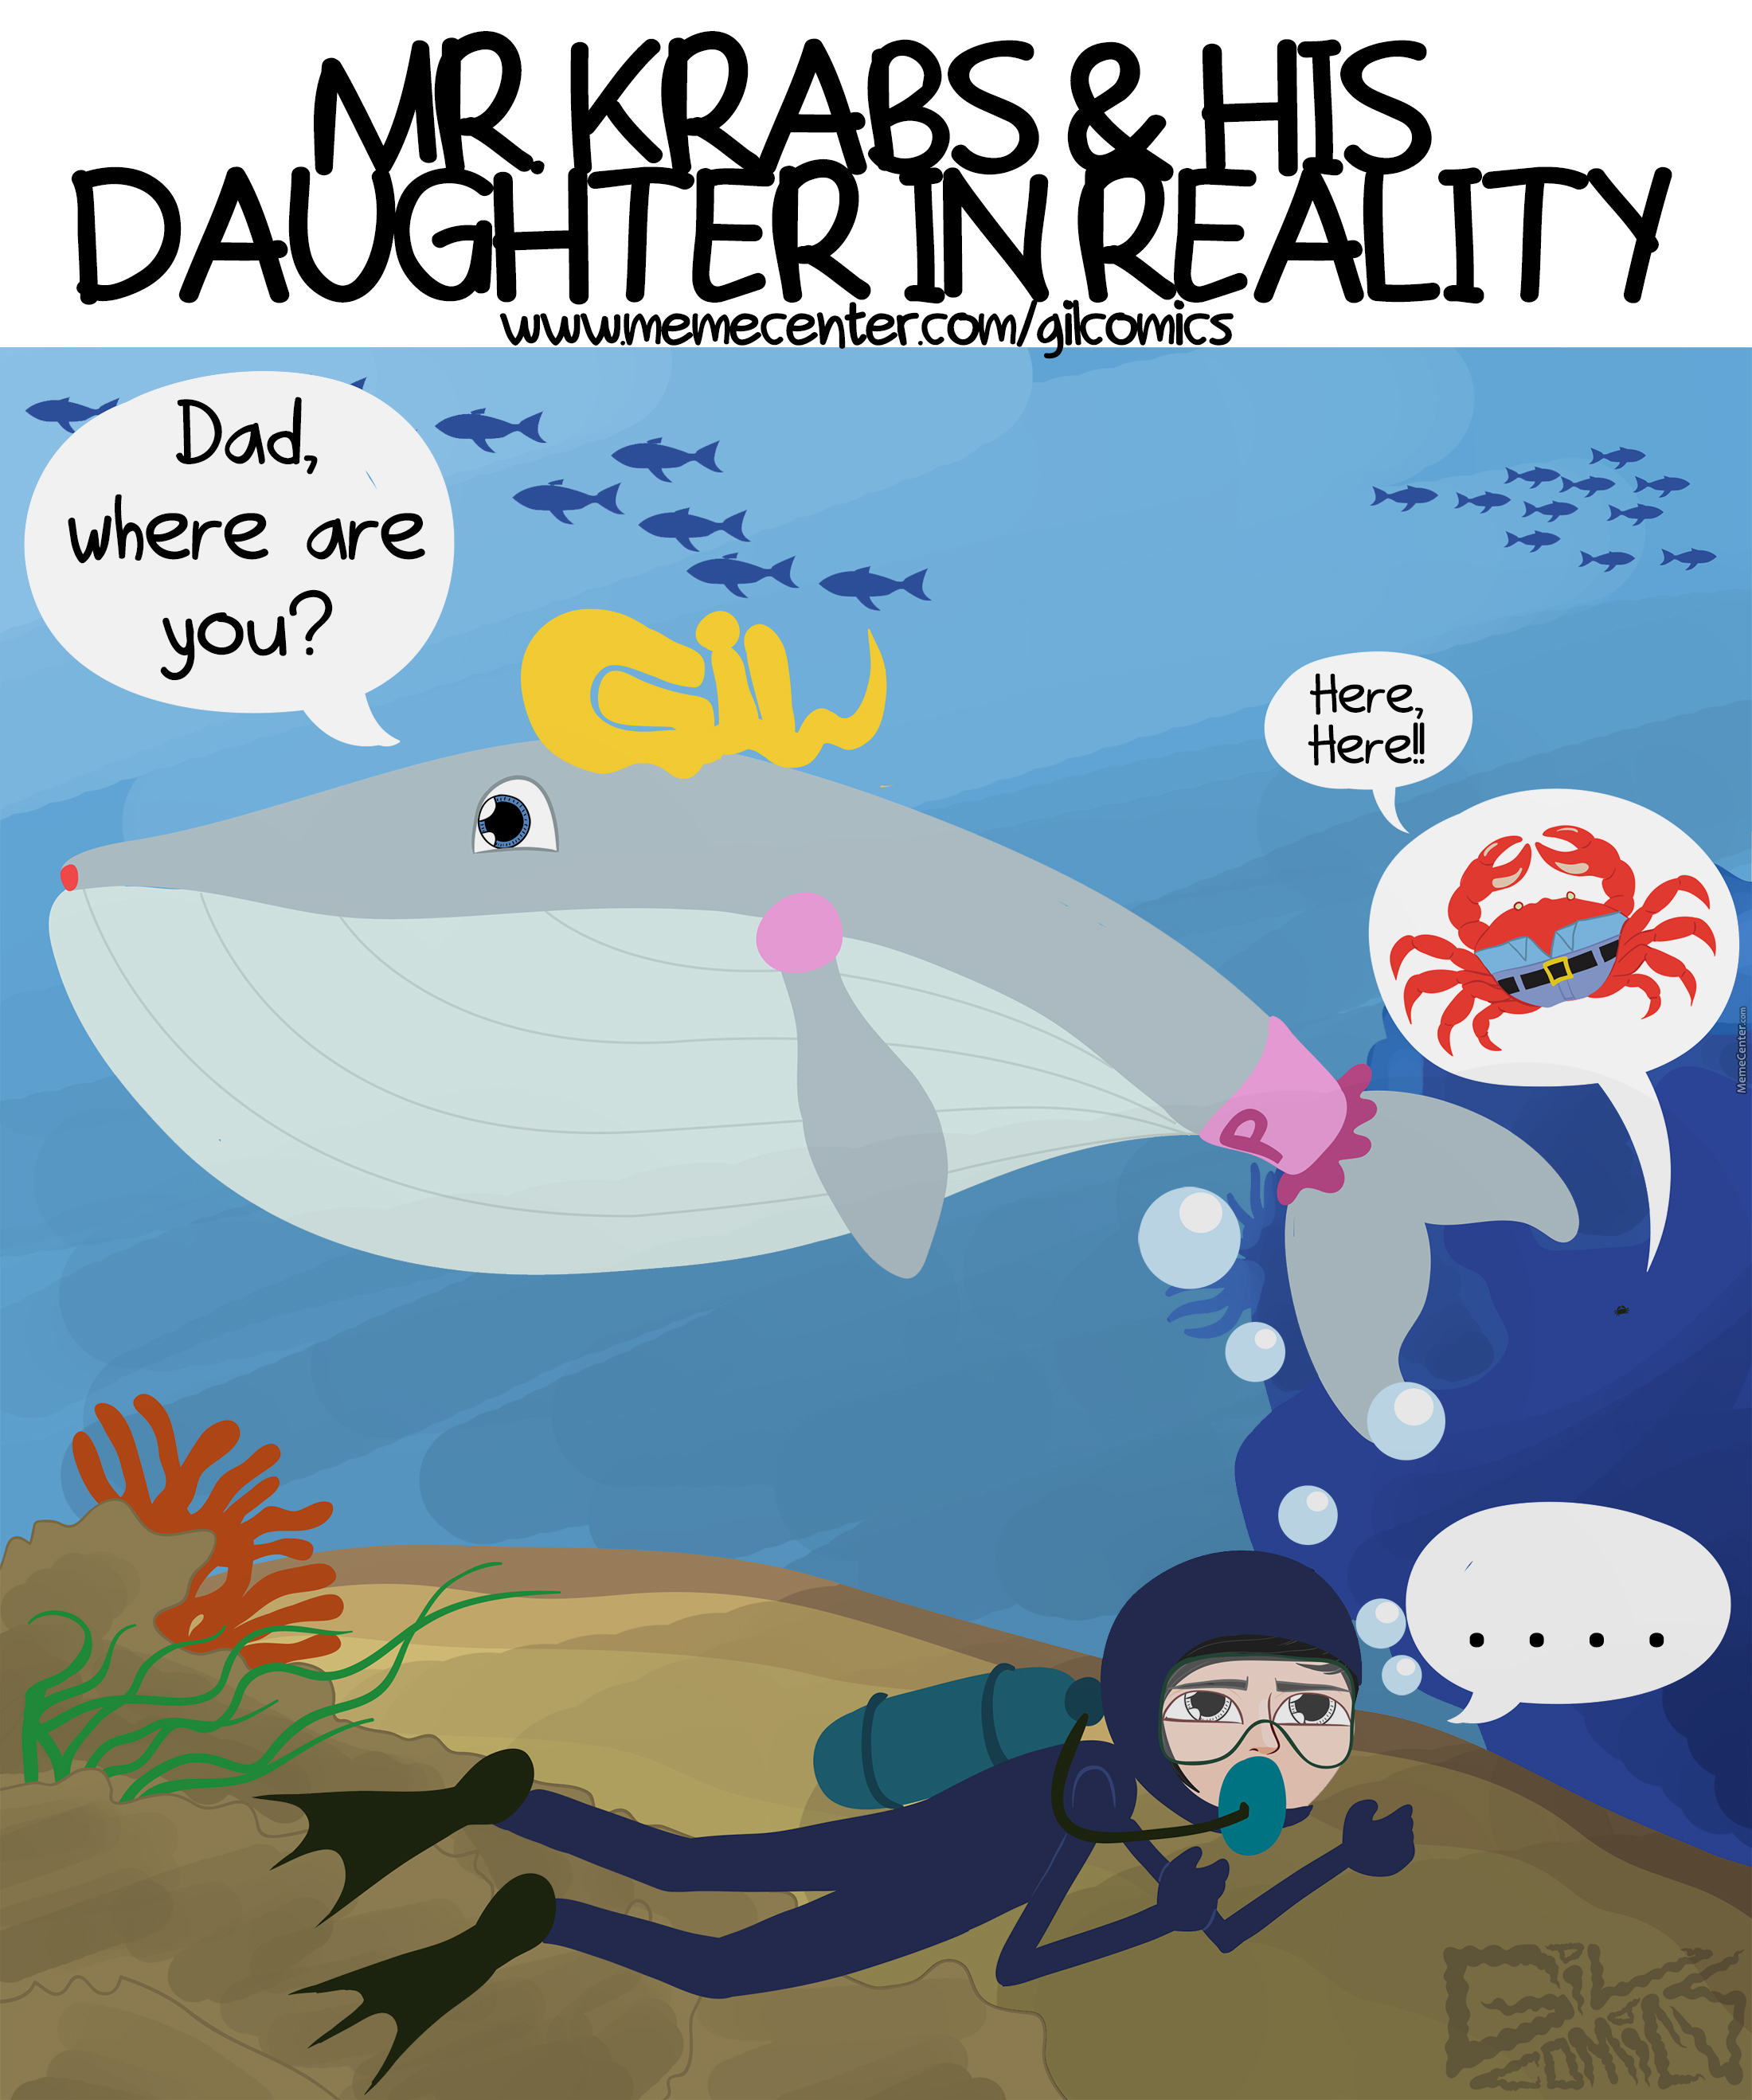 mr krabs u0026 his daughter in reality by recyclebin meme center